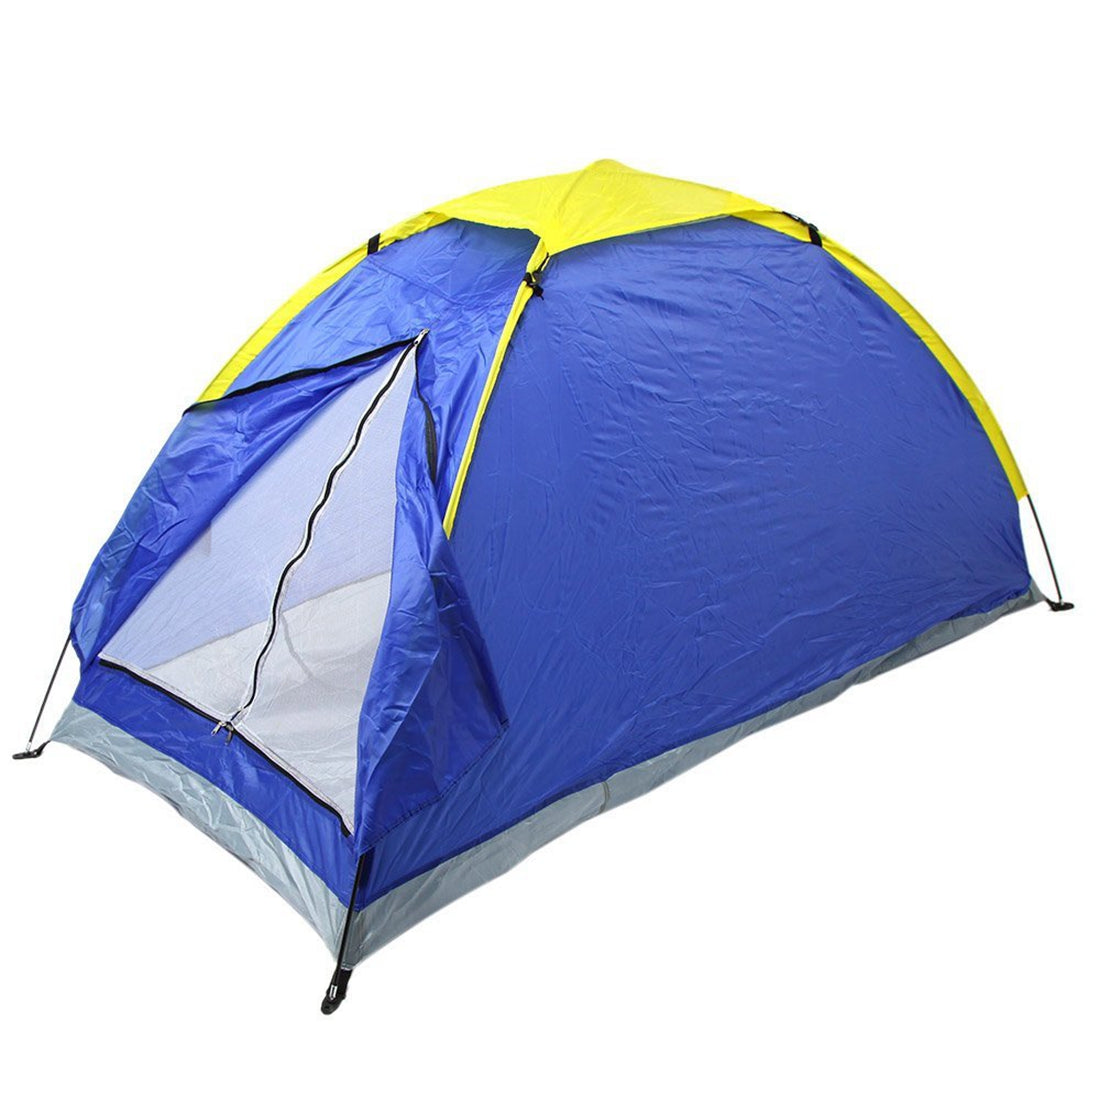 Outdoor Blue Single Person Camping Tent